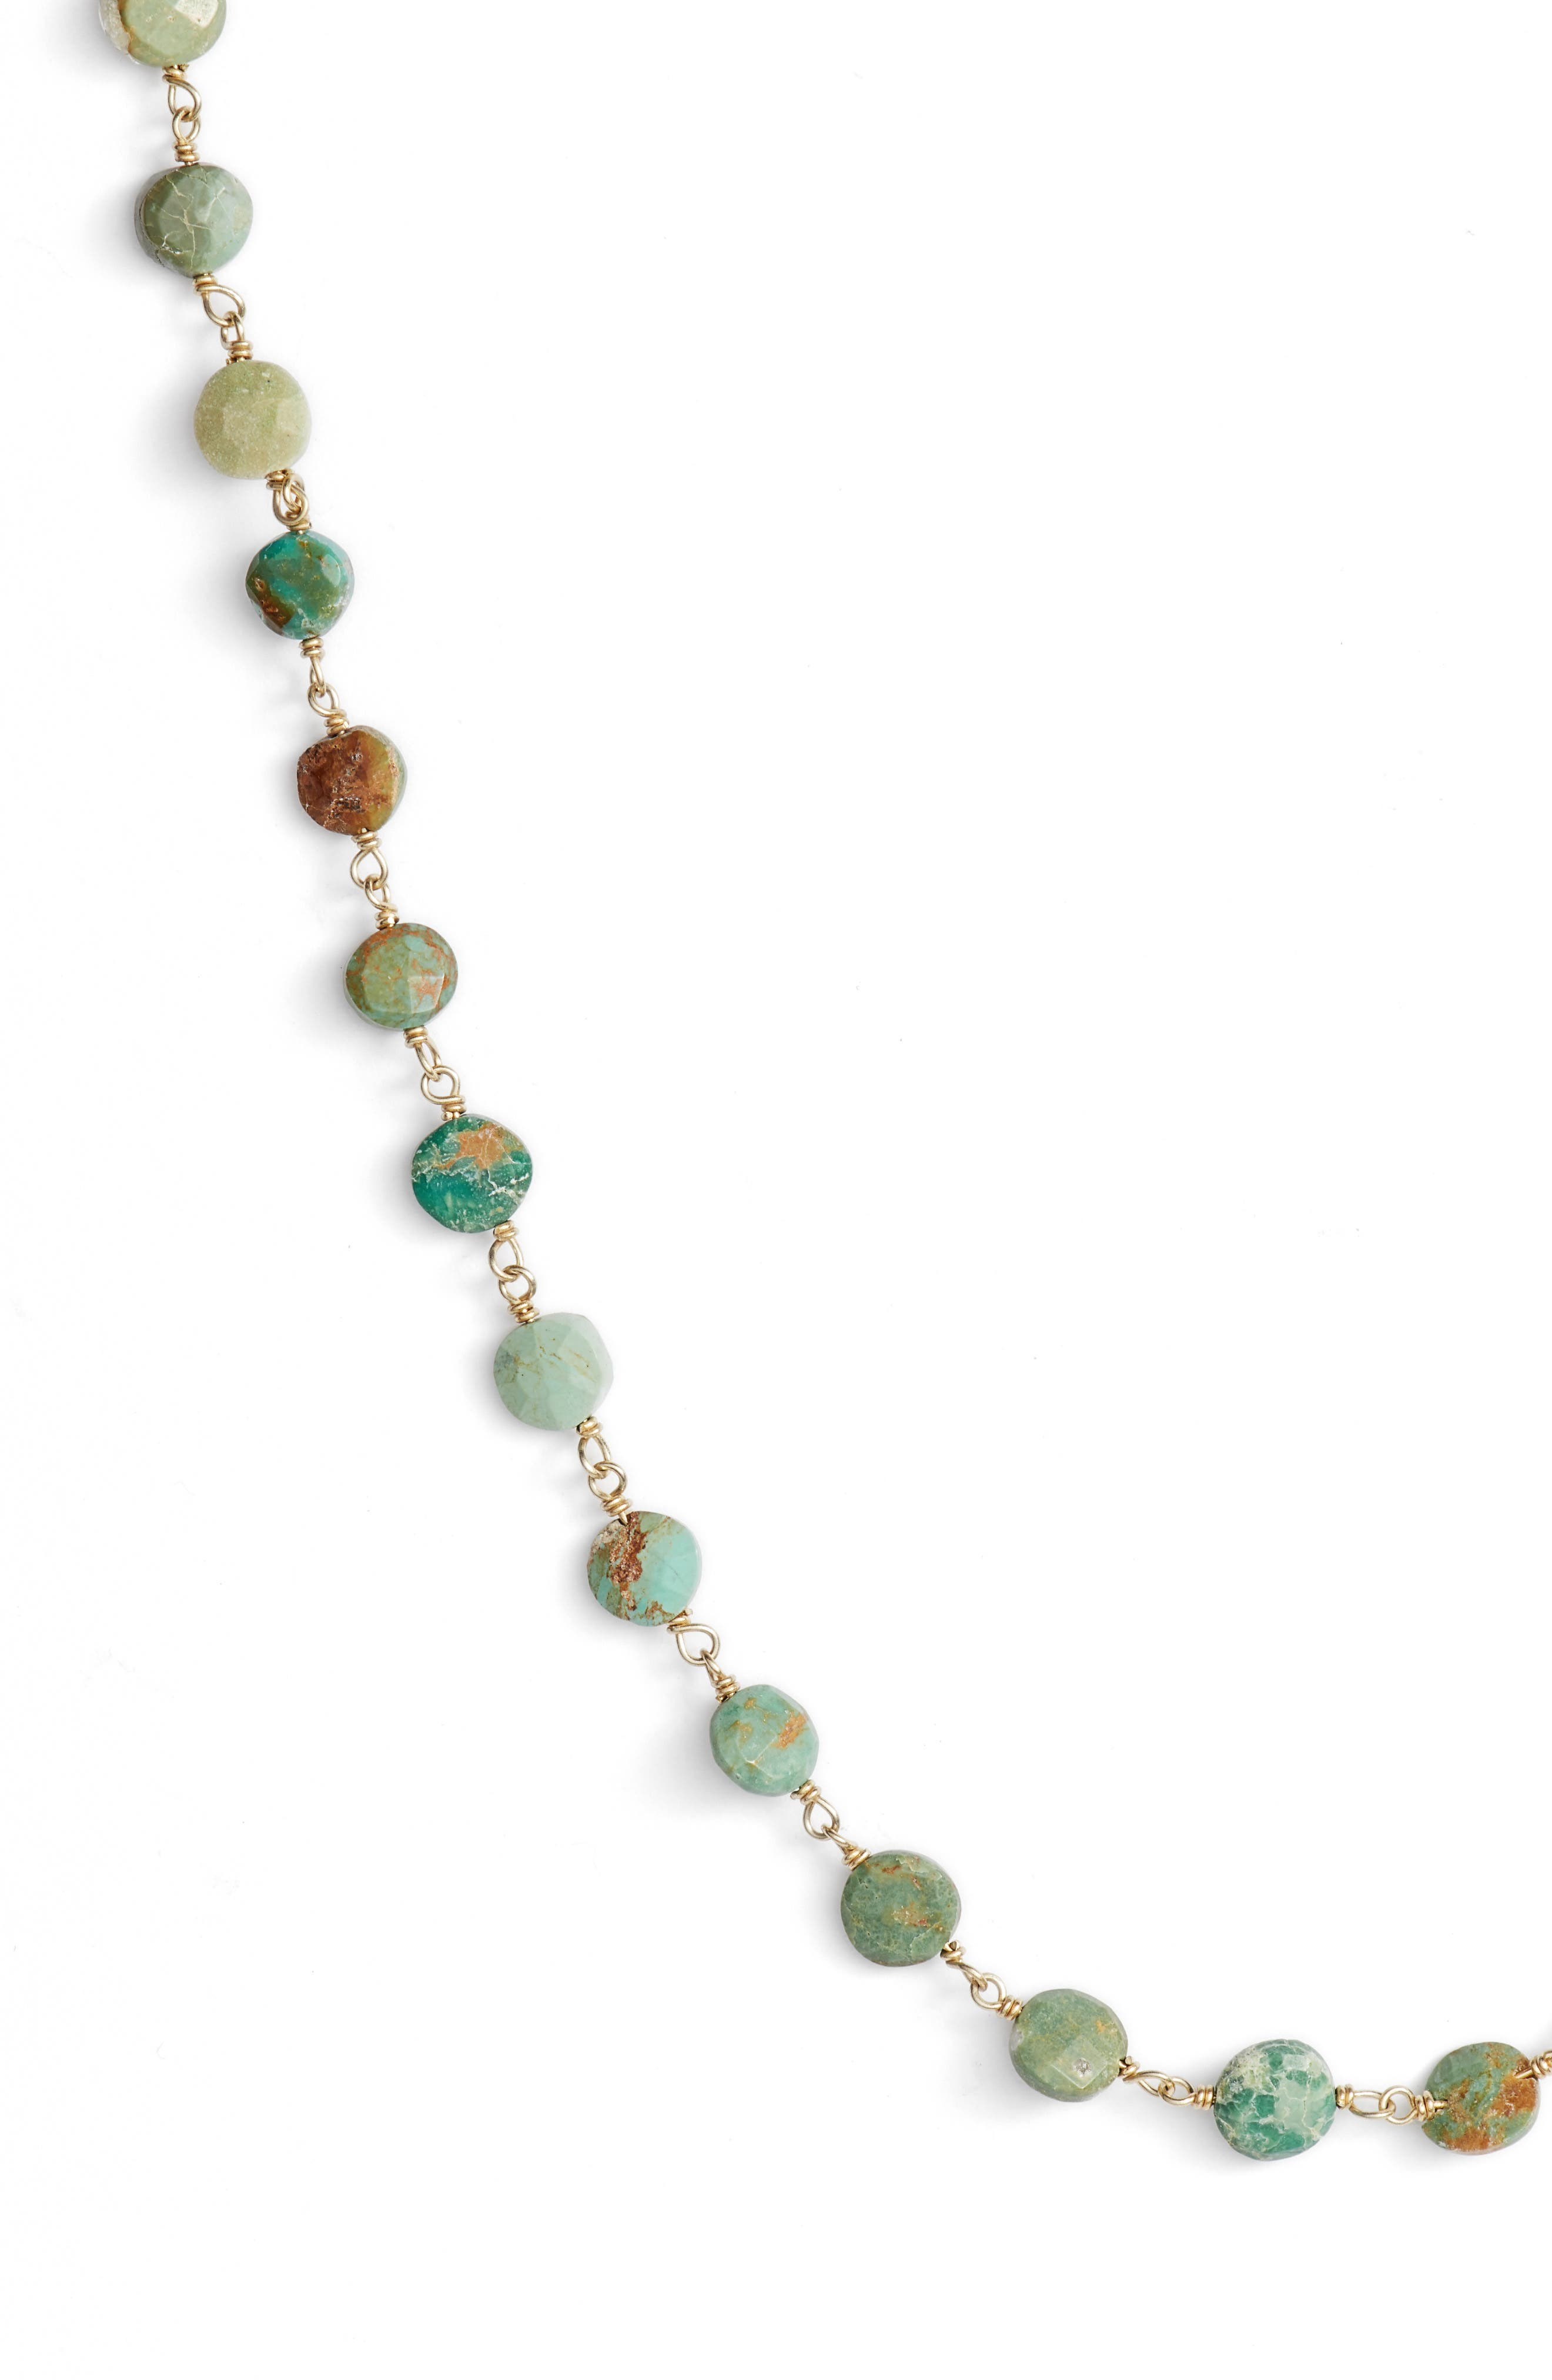 Diana Coin Necklace,                             Alternate thumbnail 2, color,                             Turquoise Coin